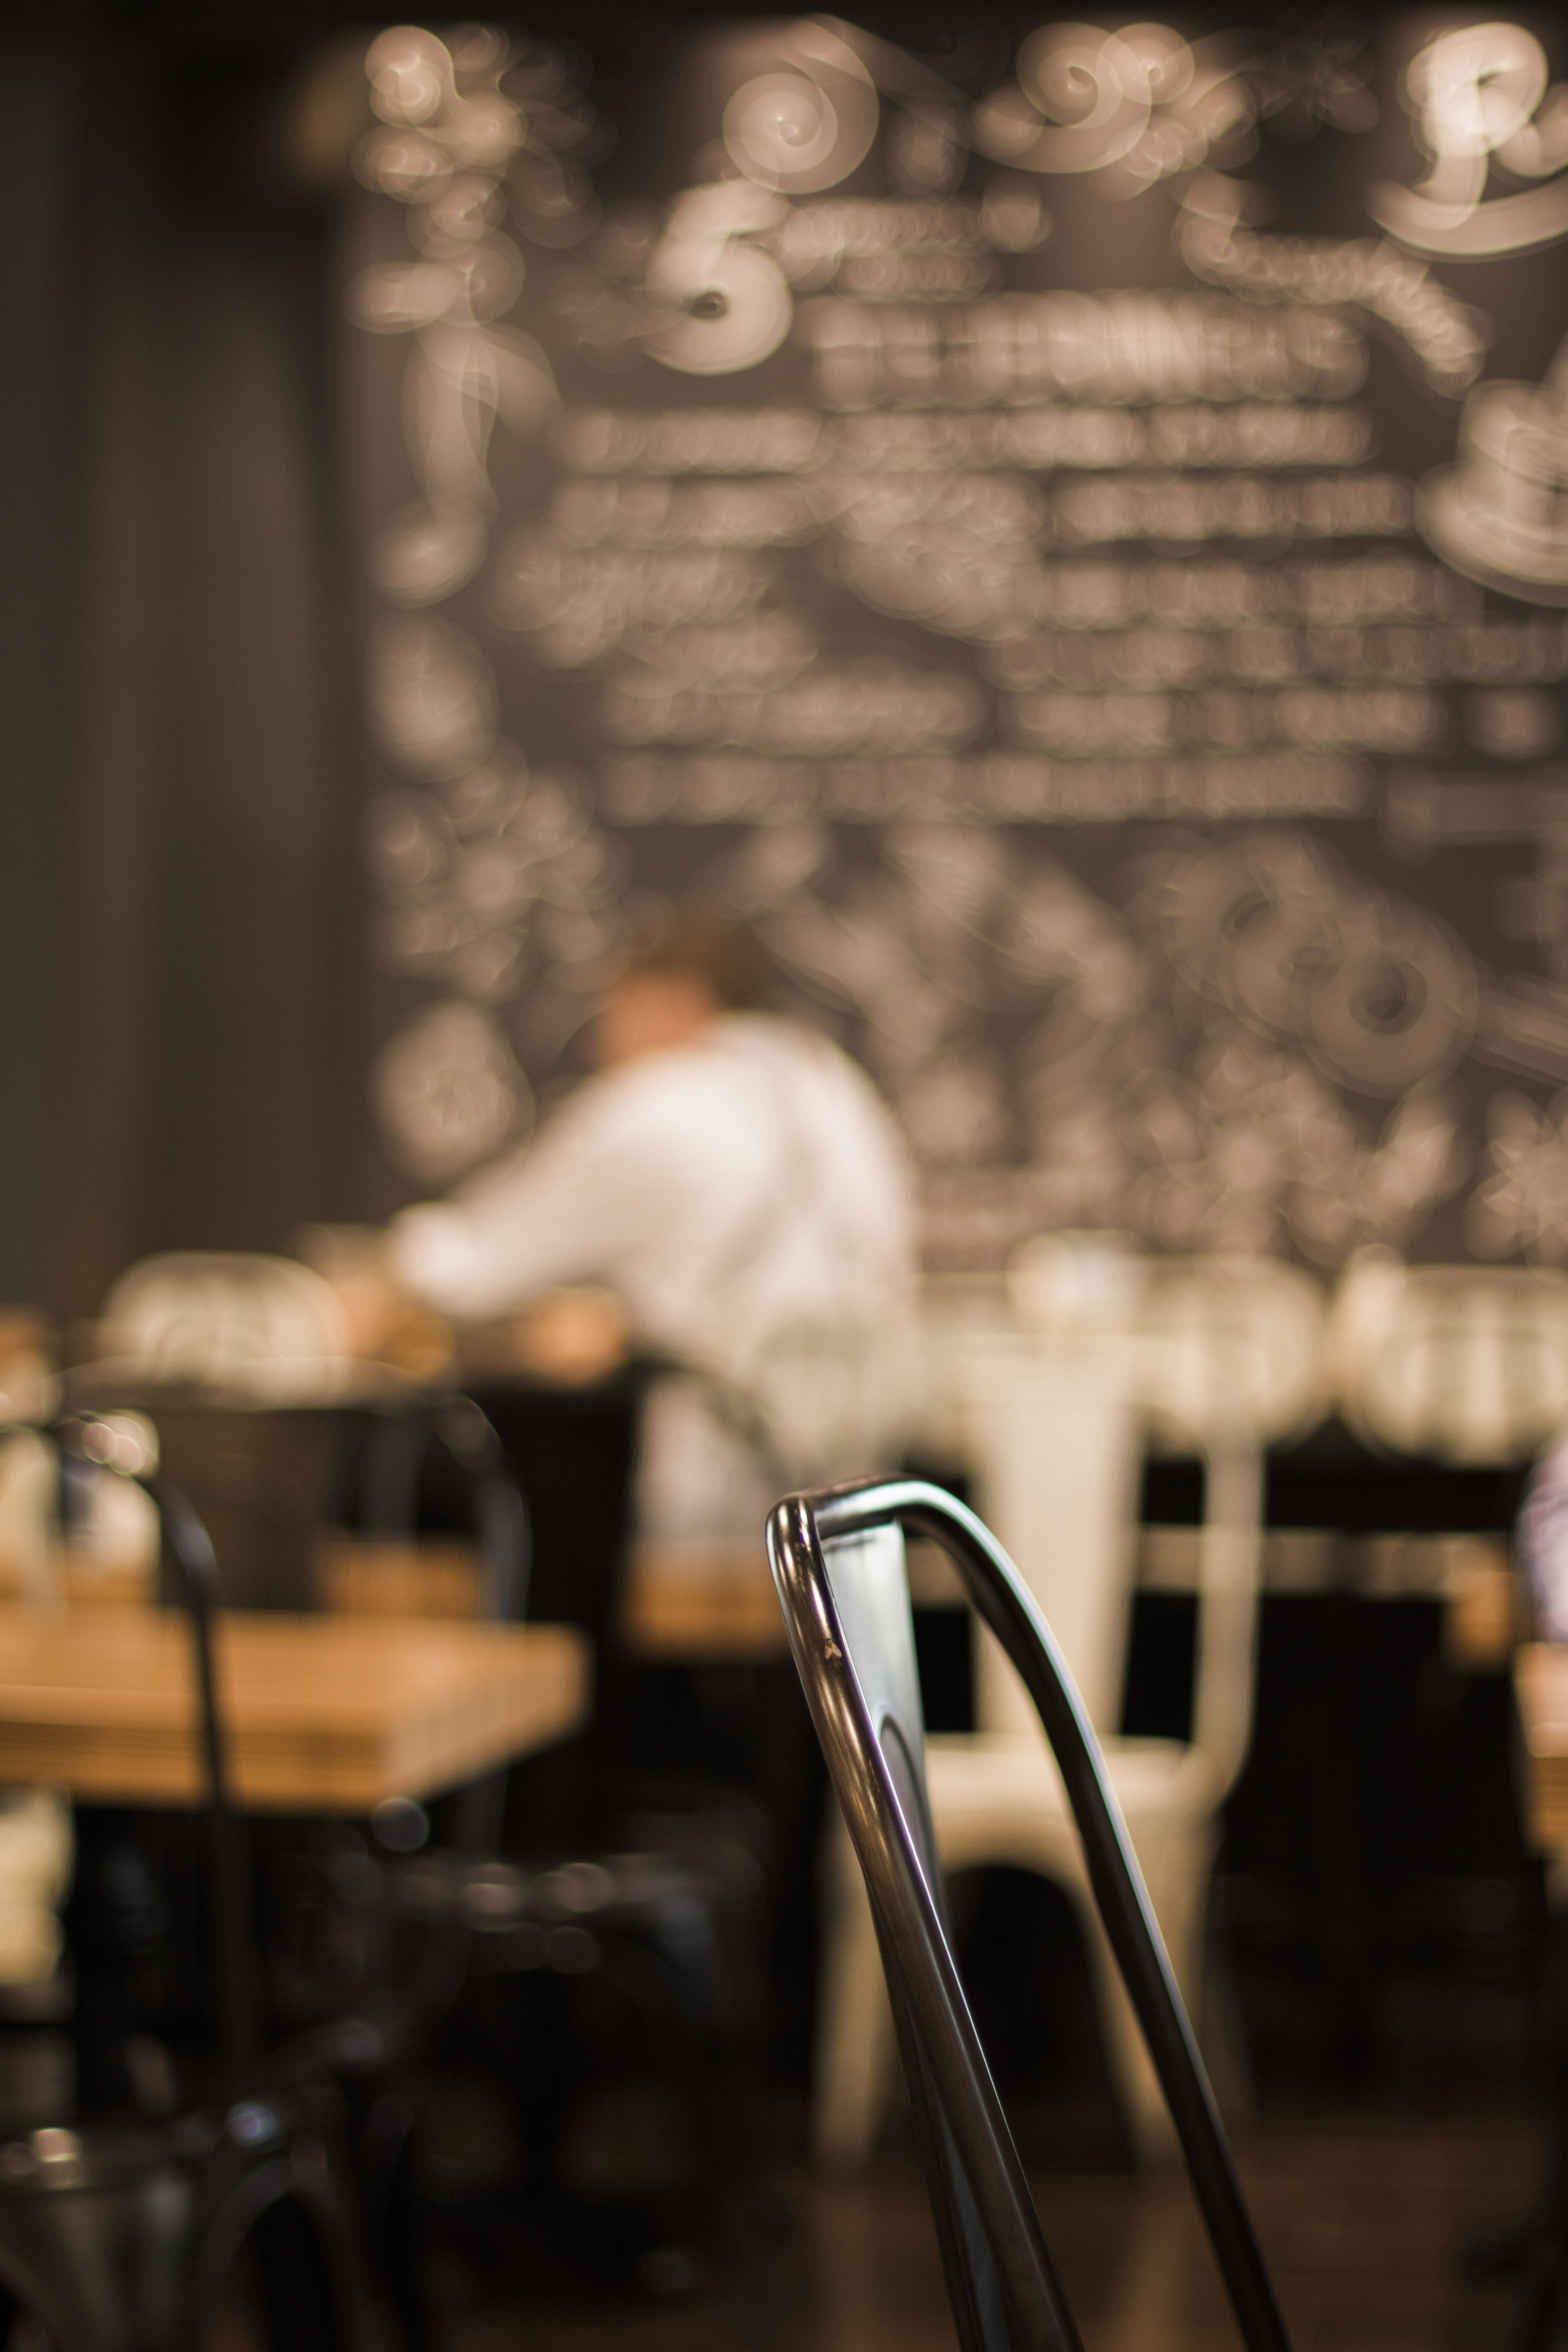 Blur Shot Of A Person In A Restaurant